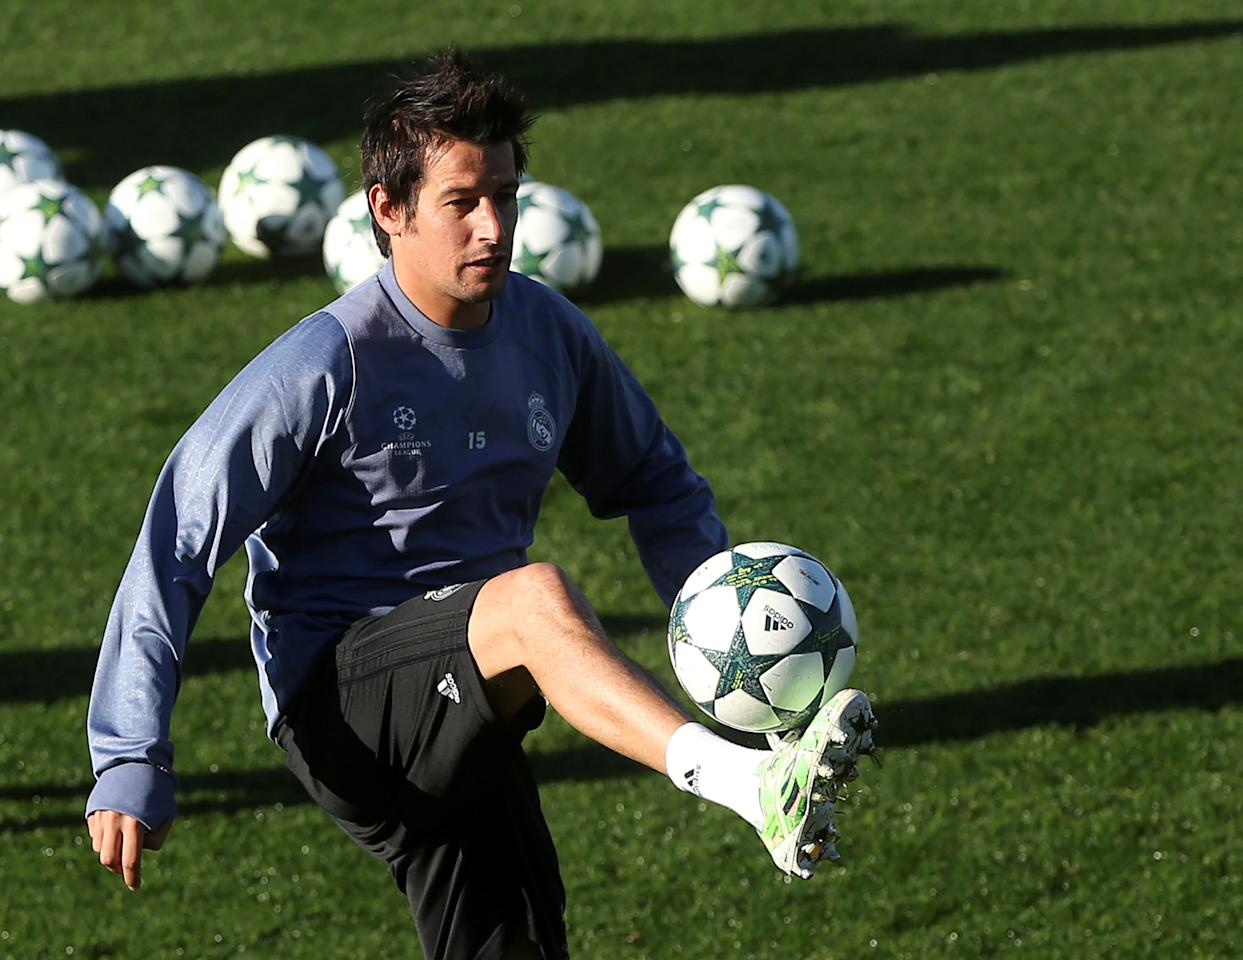 FILE PHOTO - Football Soccer - Real Madrid training session - UEFA Champions League Group Stage - Group F - Valdebebas training grounds - Madrid, Spain - 06/12/16 - Real Madrid's Fabio Coentrao controls the ball during a training session. REUTERS/Susana Vera/File Photo